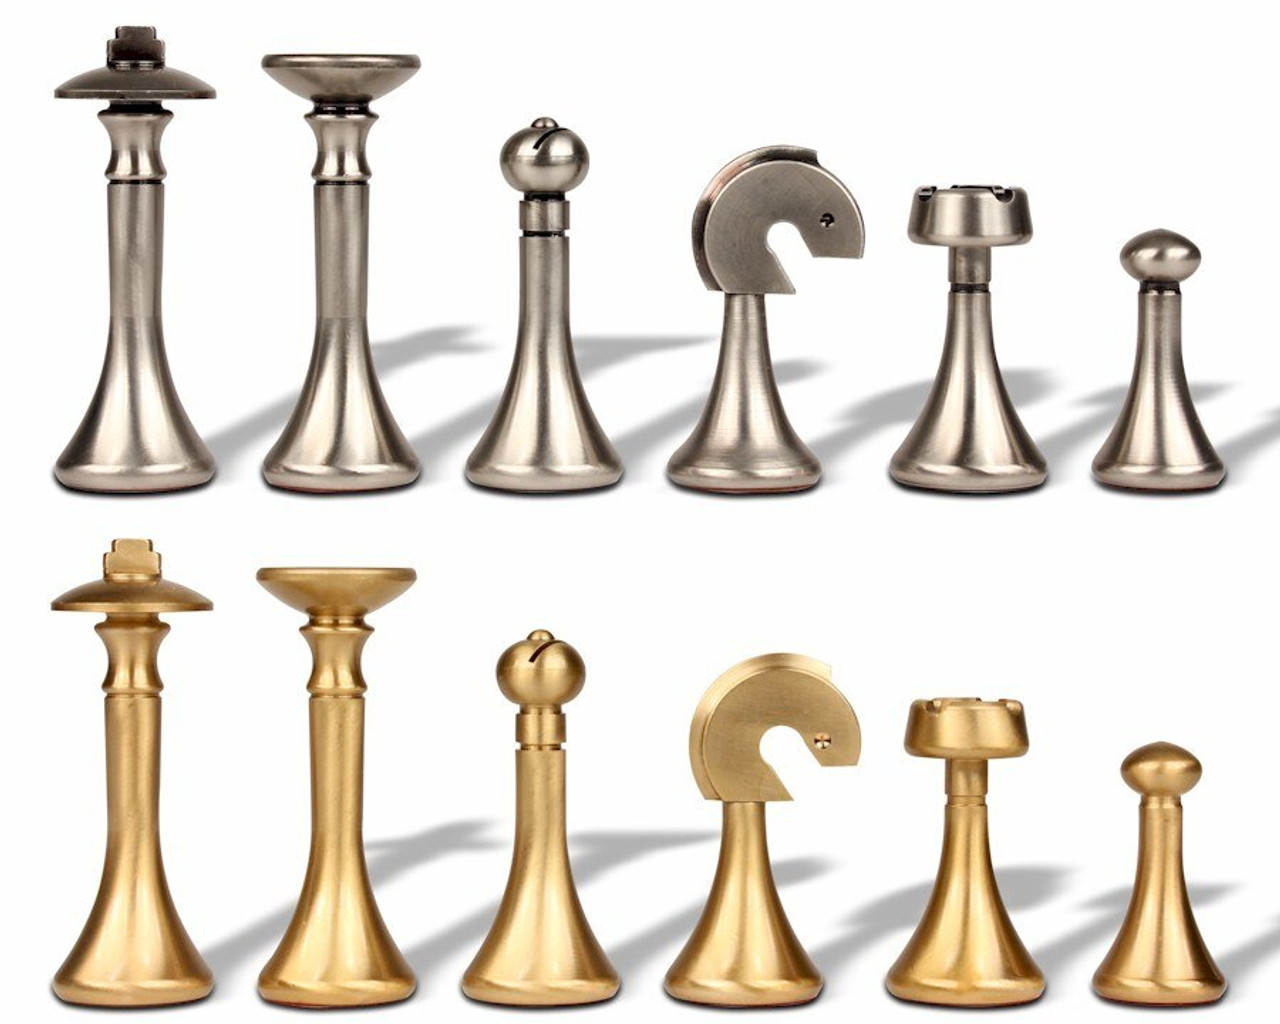 Modern Design Solid Brass Chess Set By Italfama The Chess Store